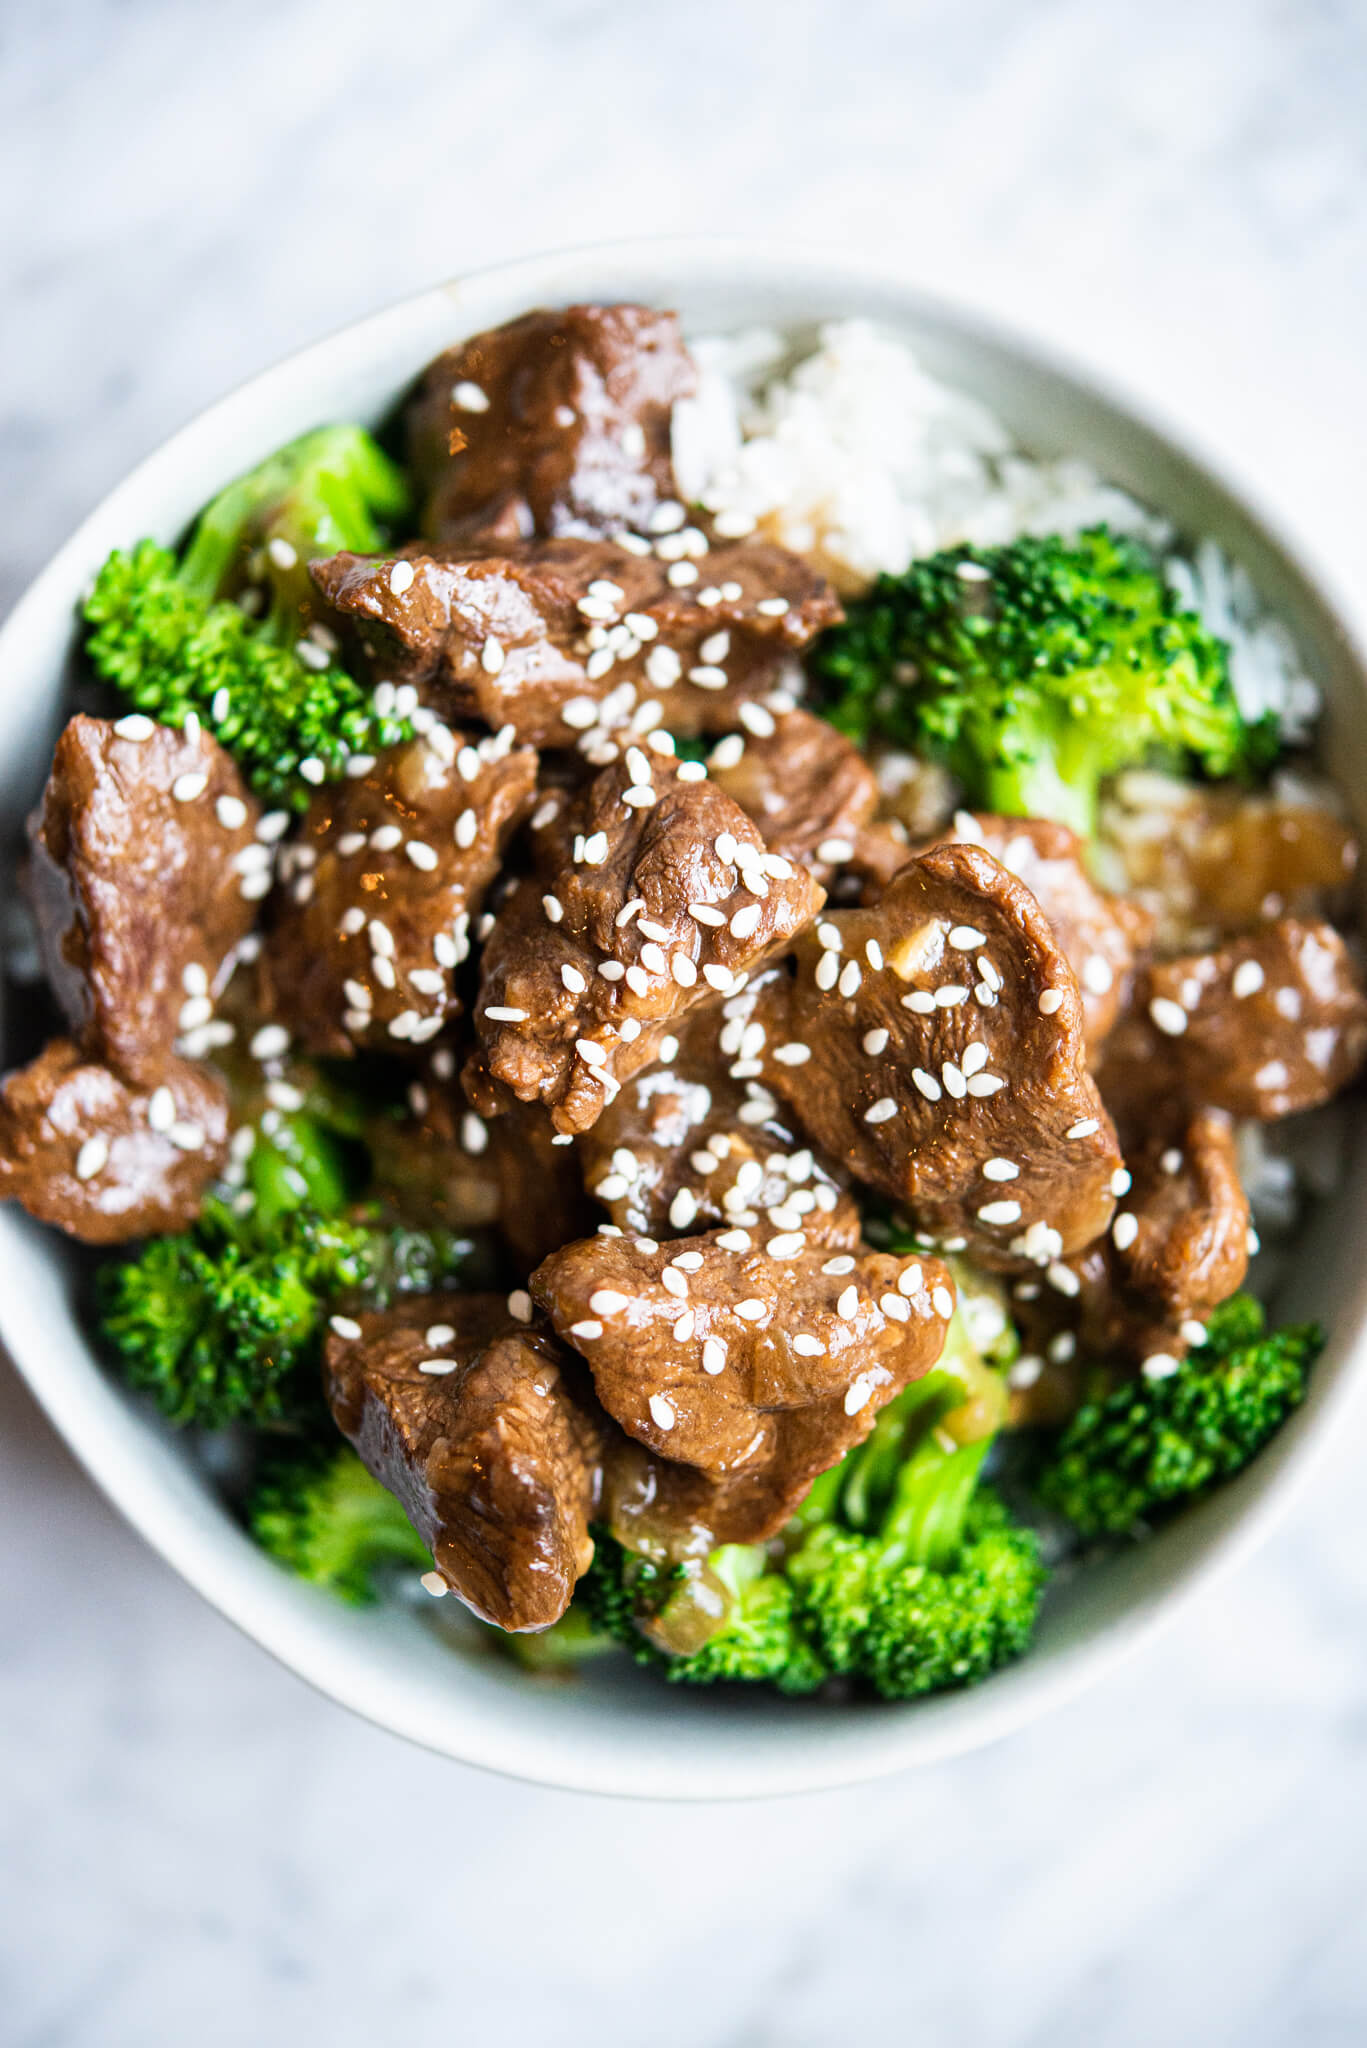 instant pot beef and broccoli over white rice in a white bowl on a marble surface